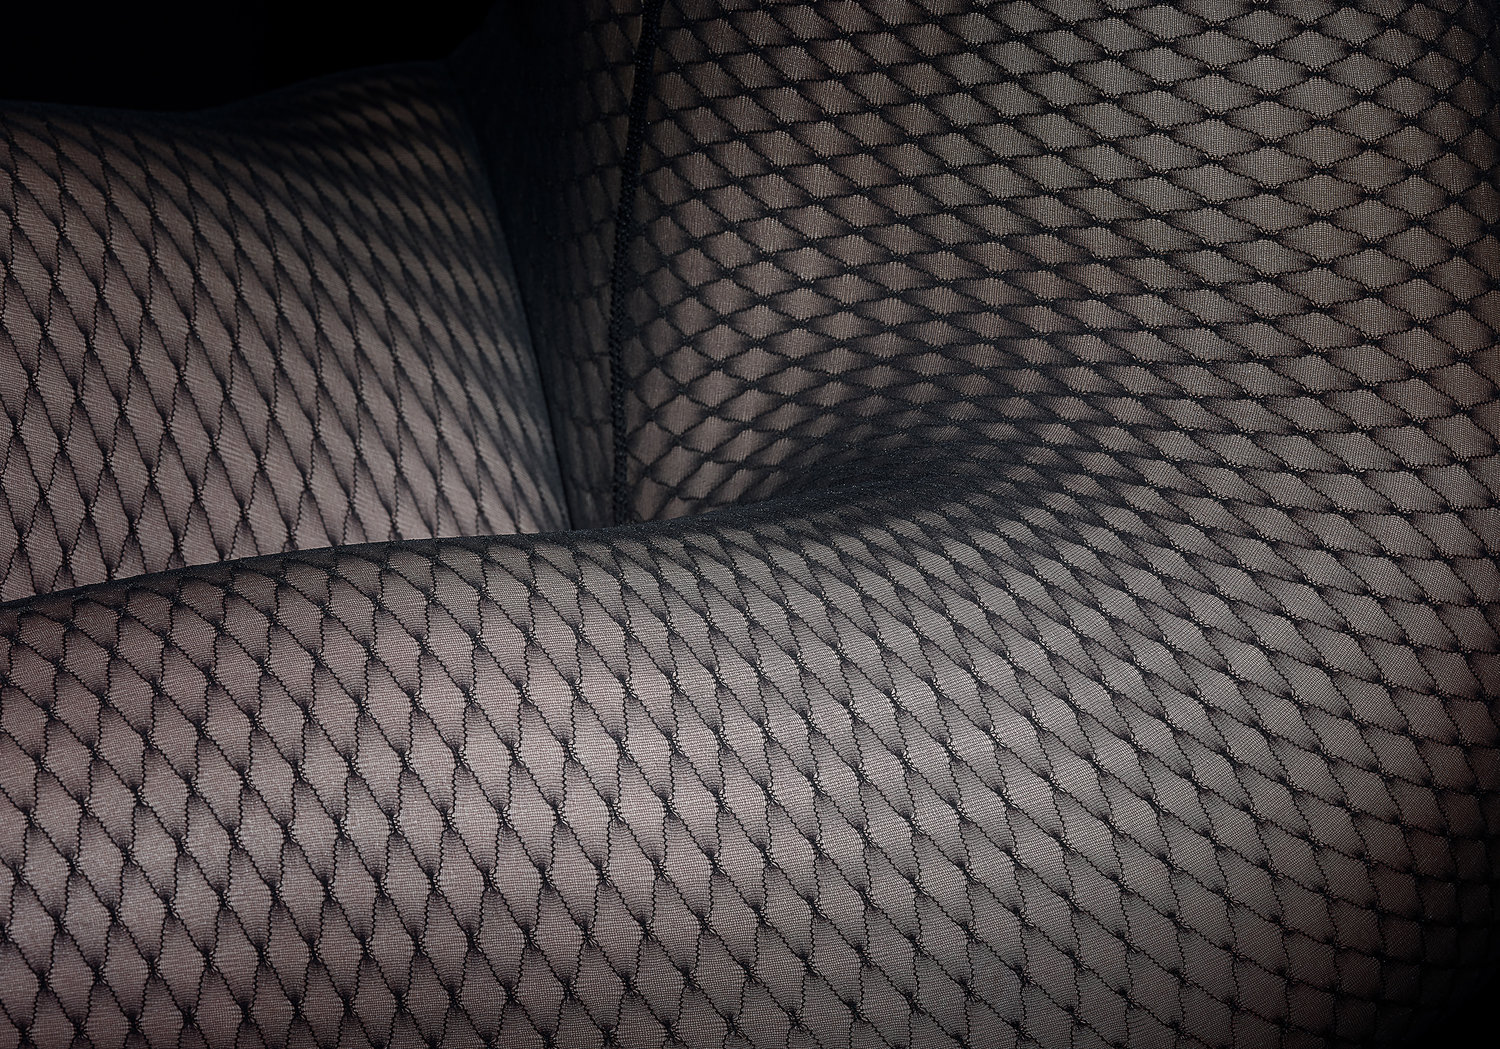 wolford-pantyhose-close-up-abstract-fashion-photographer-advertising-photography-stan-musilek-1.jpg